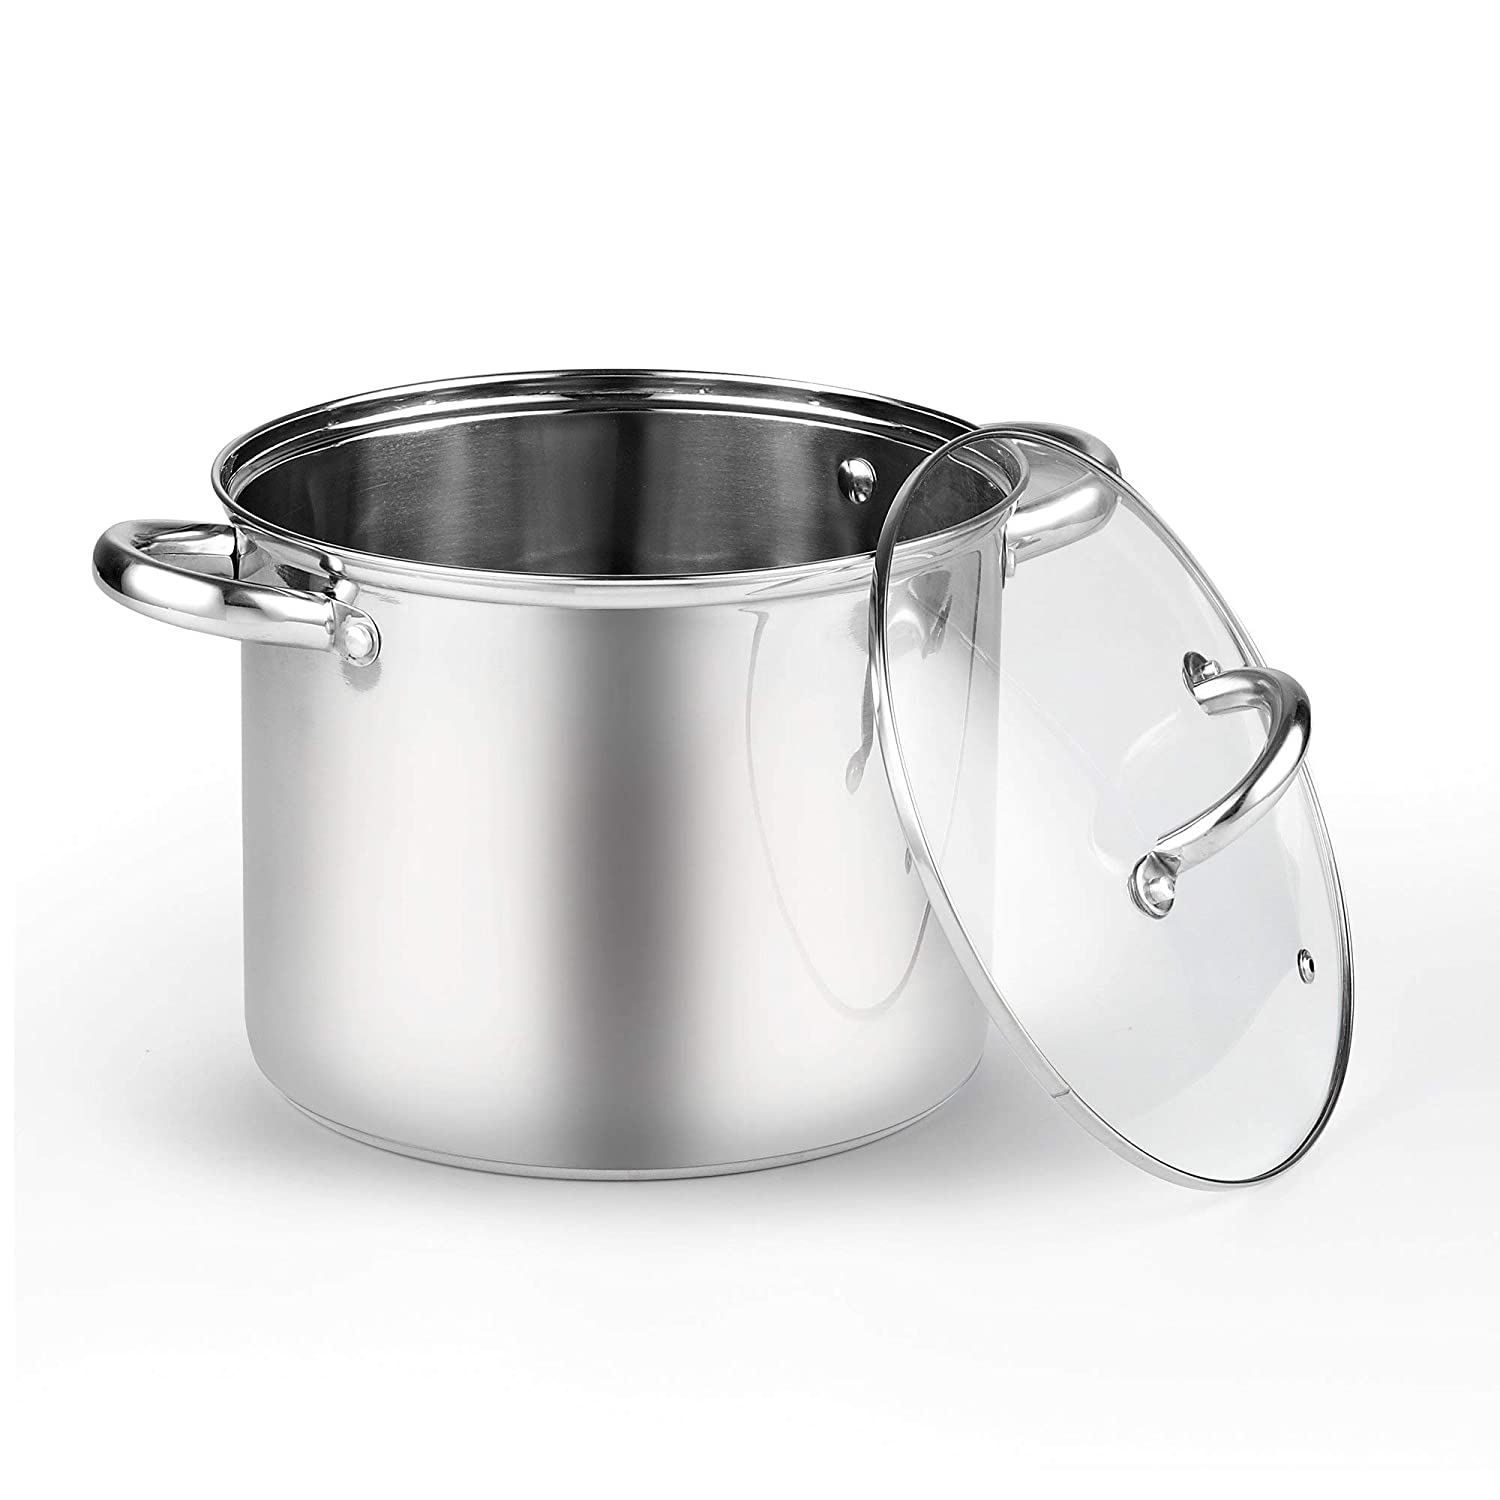 Renewed Cook N Home 02401 Stainless Steel 4-Piece 8 Quart Pasta Cooker Steamer Multipots,